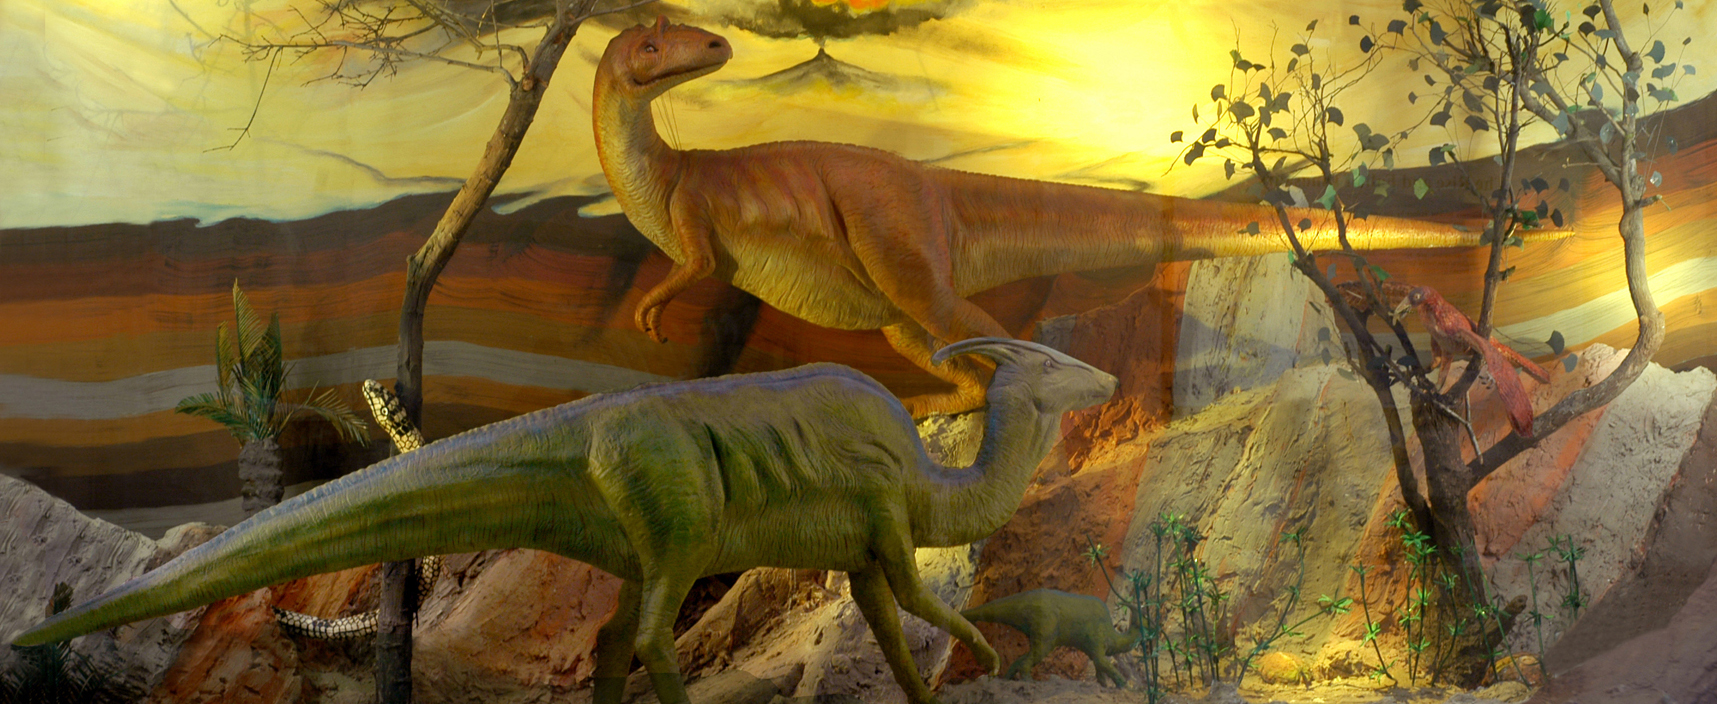 Dinosaur of India  Section